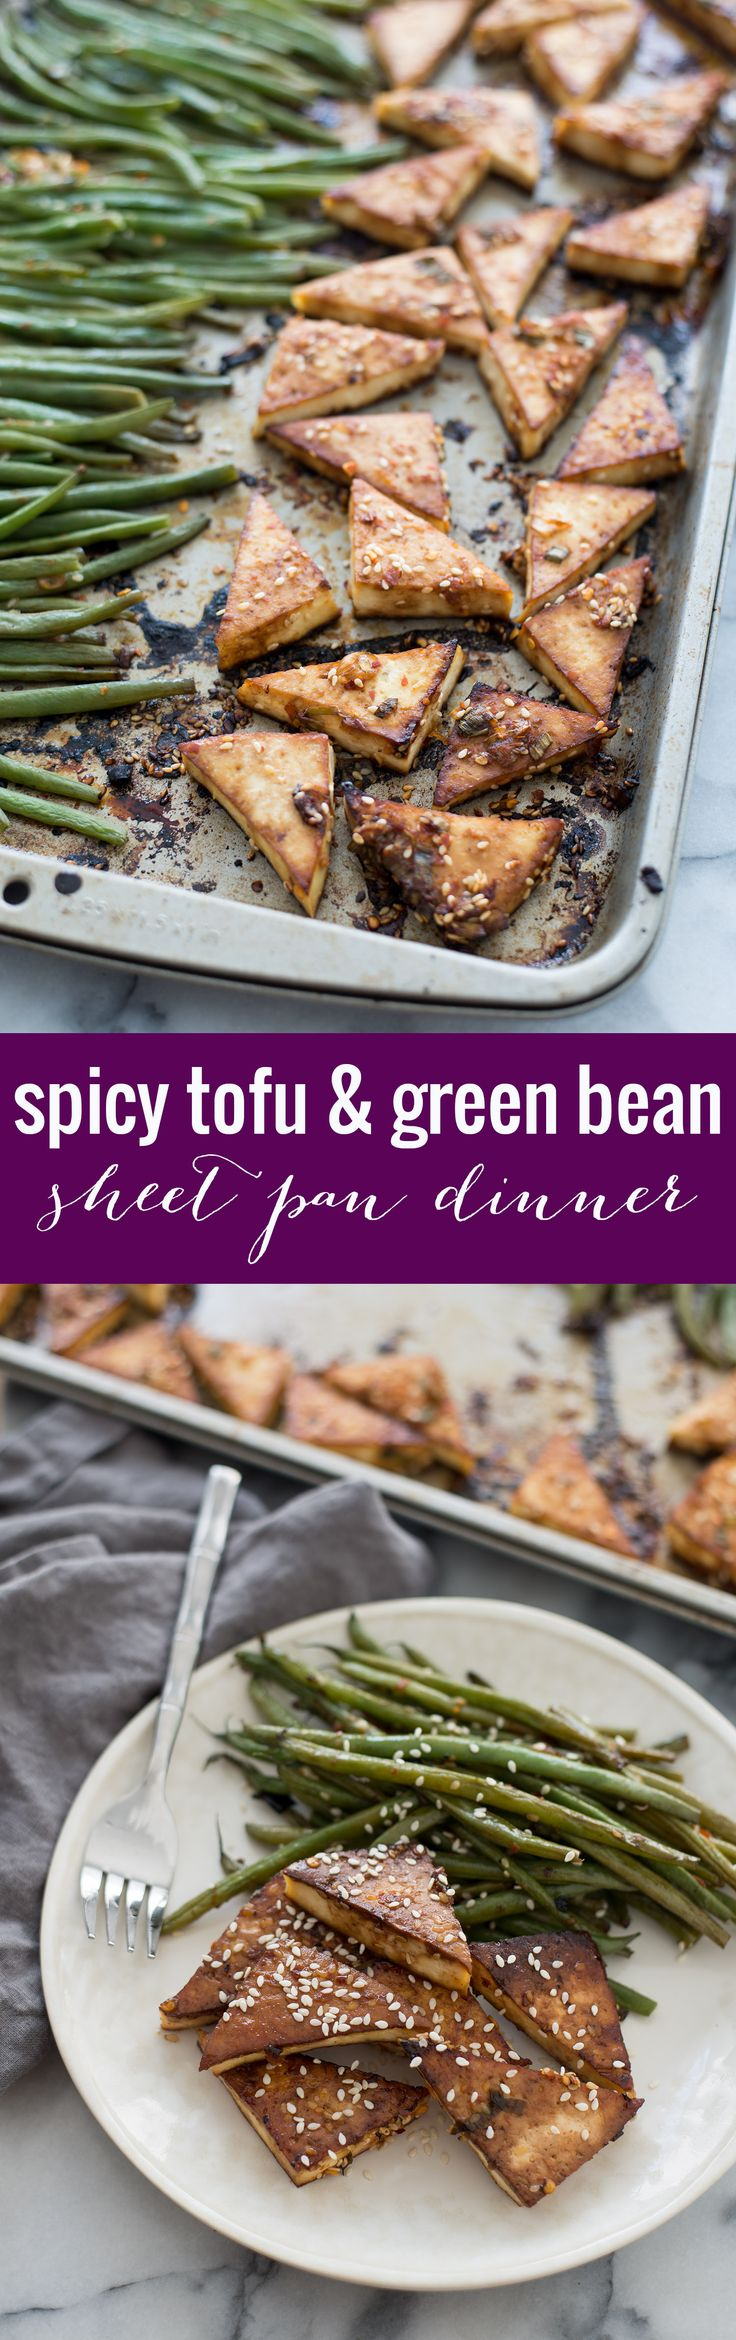 Sheet Pan Spicy Tofu and Green Beans! You are going to love this one pan meal. Spicy tofu with crispy green beans. Vegan and Gluten-Free, a must-make! | www.delishknowledge.com